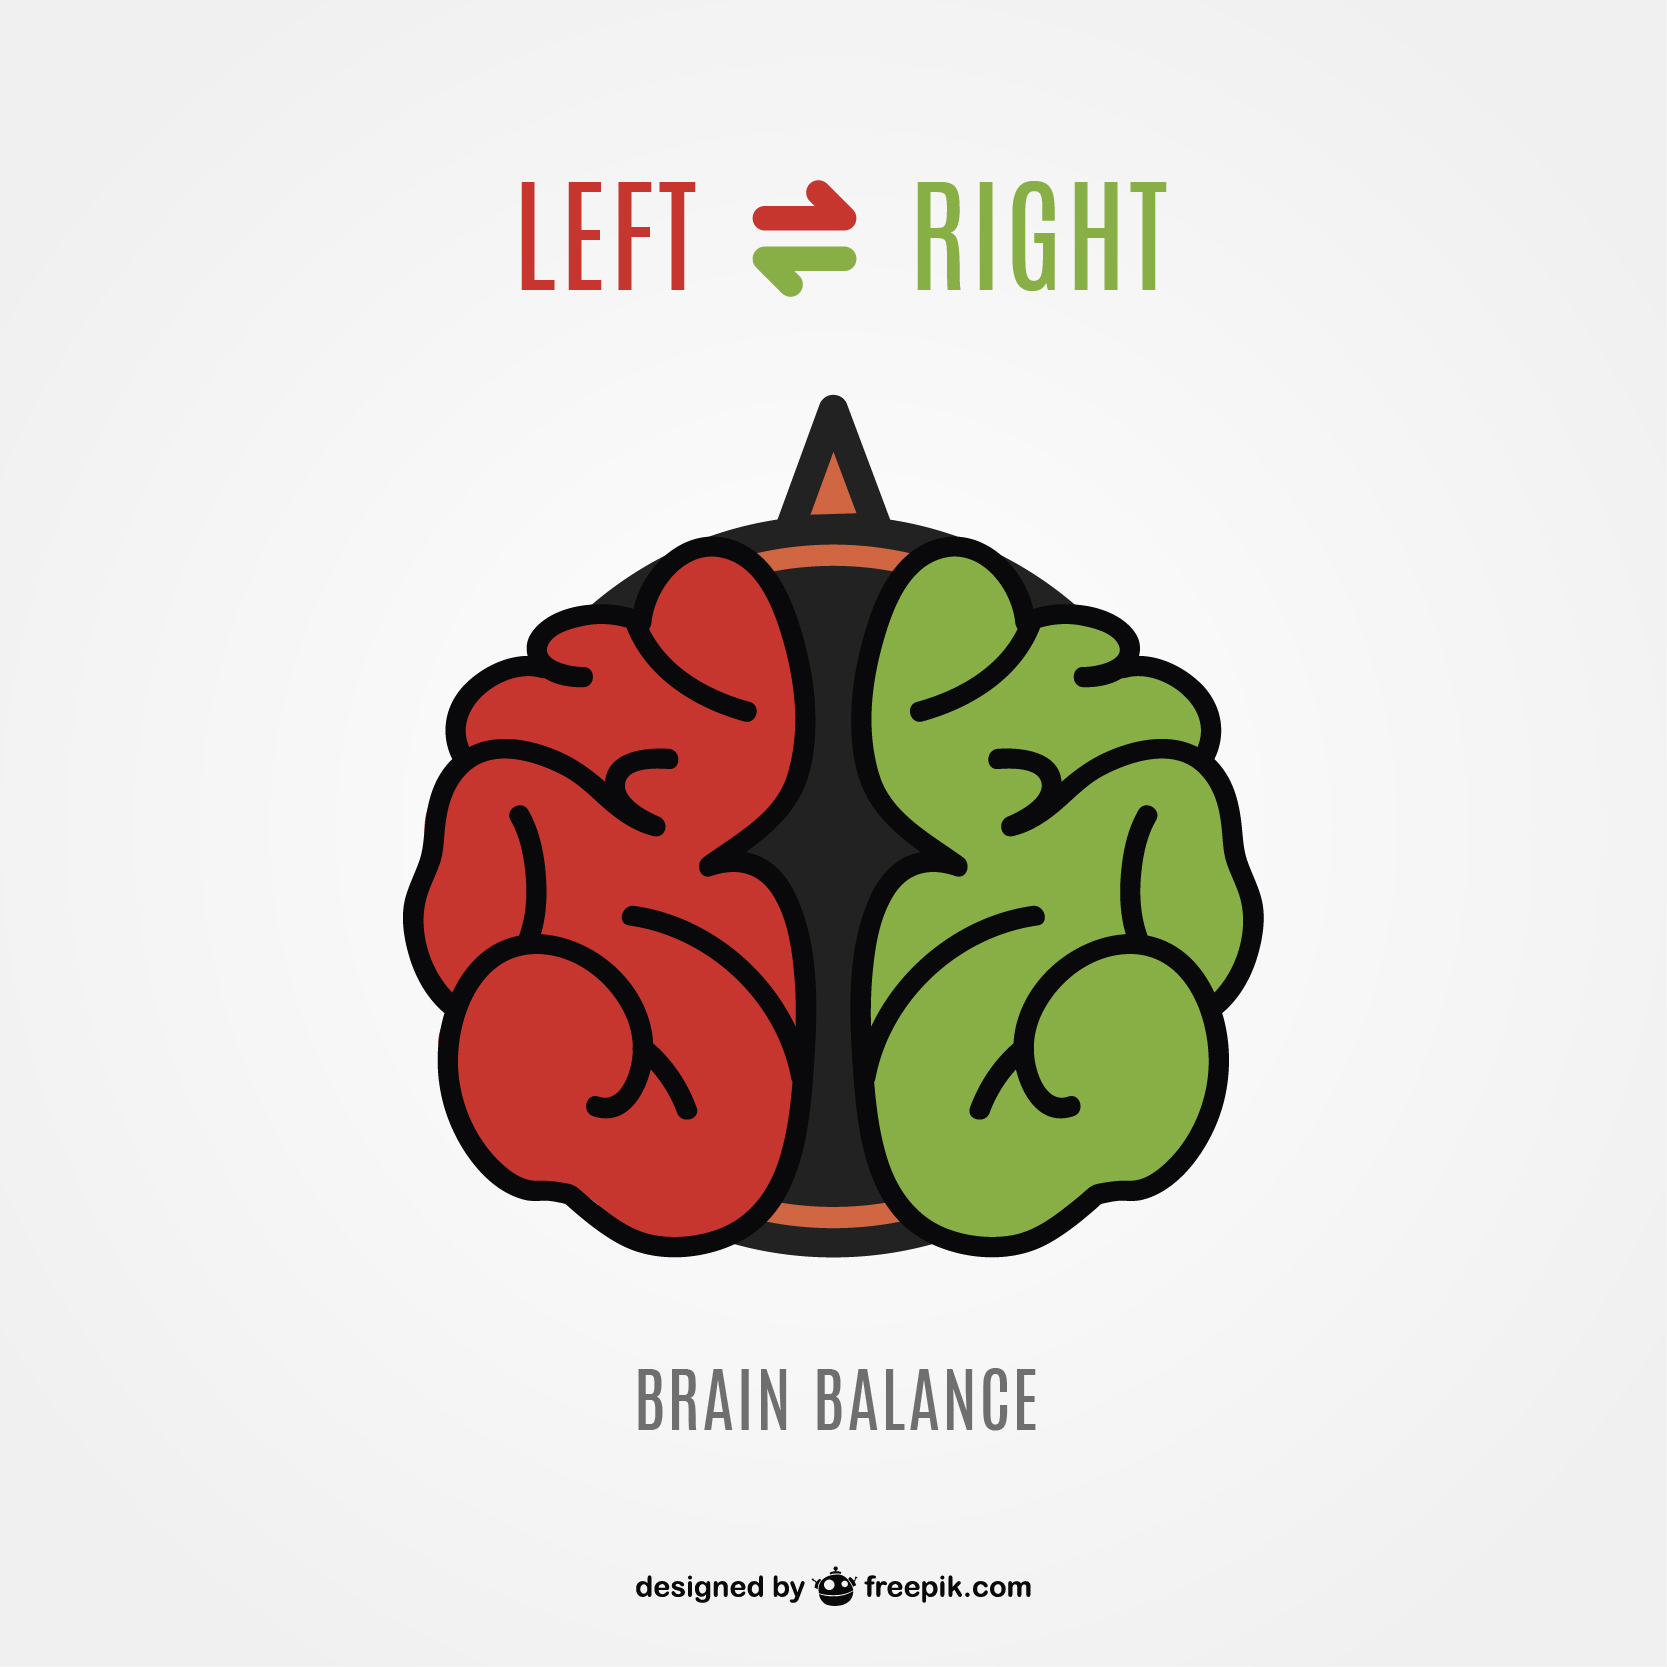 Left brain = logical thinking Right brain = emotional thinking